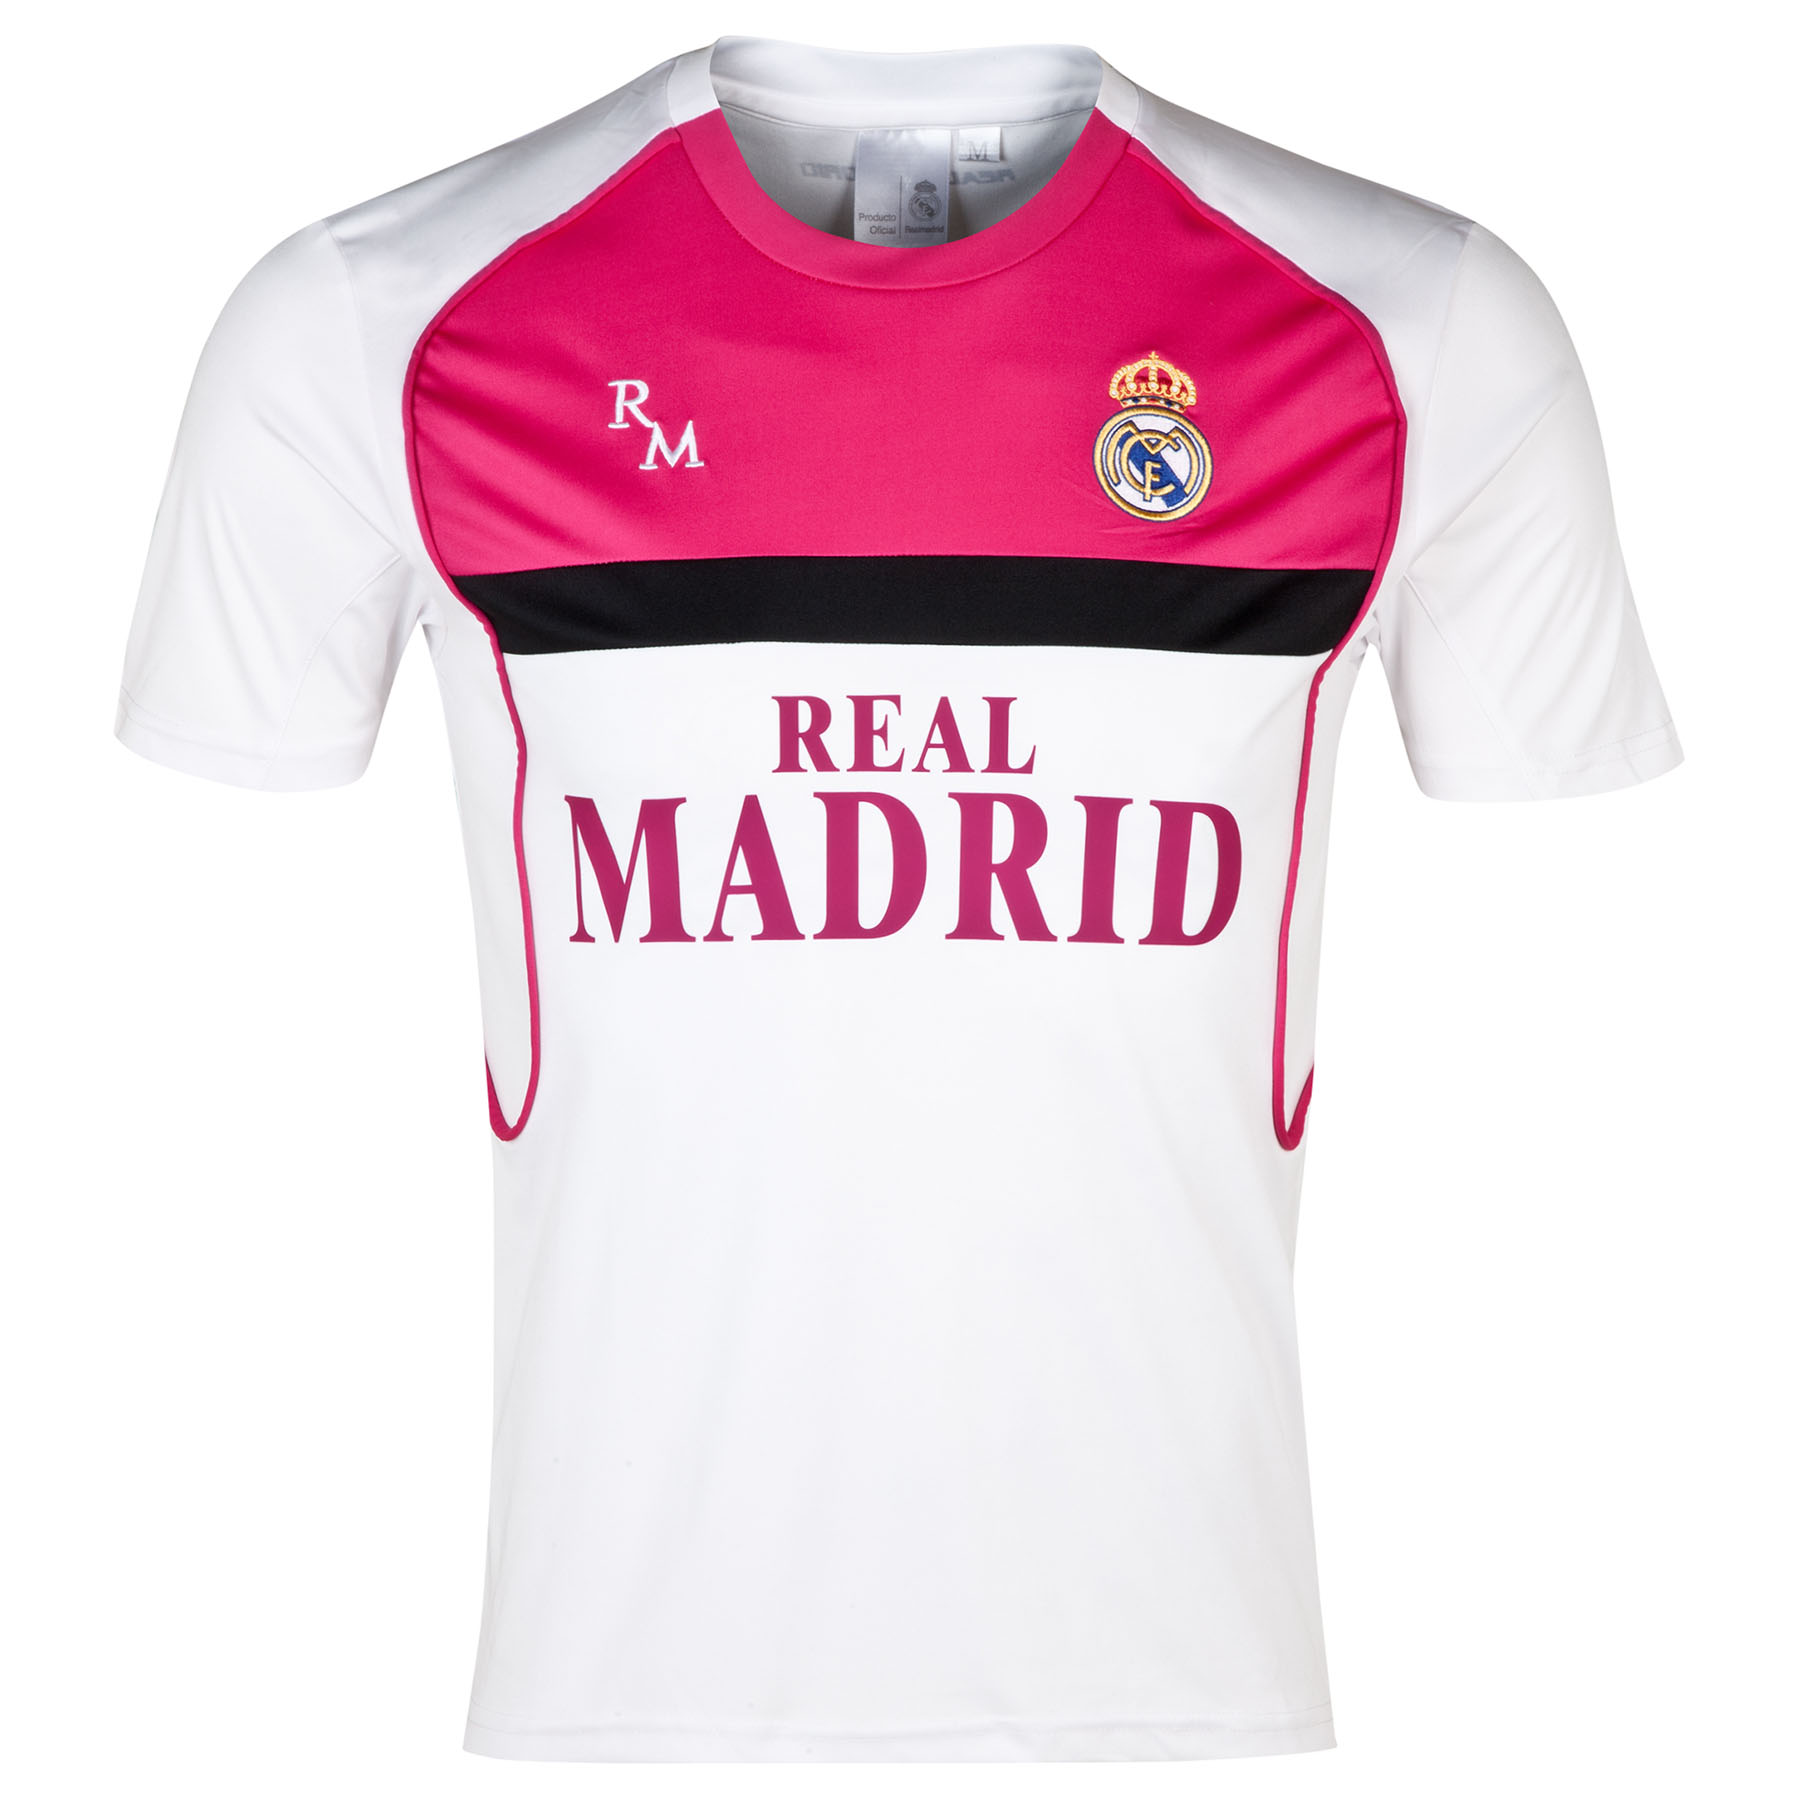 Real Madrid Fan T-Shirt - White - Mens